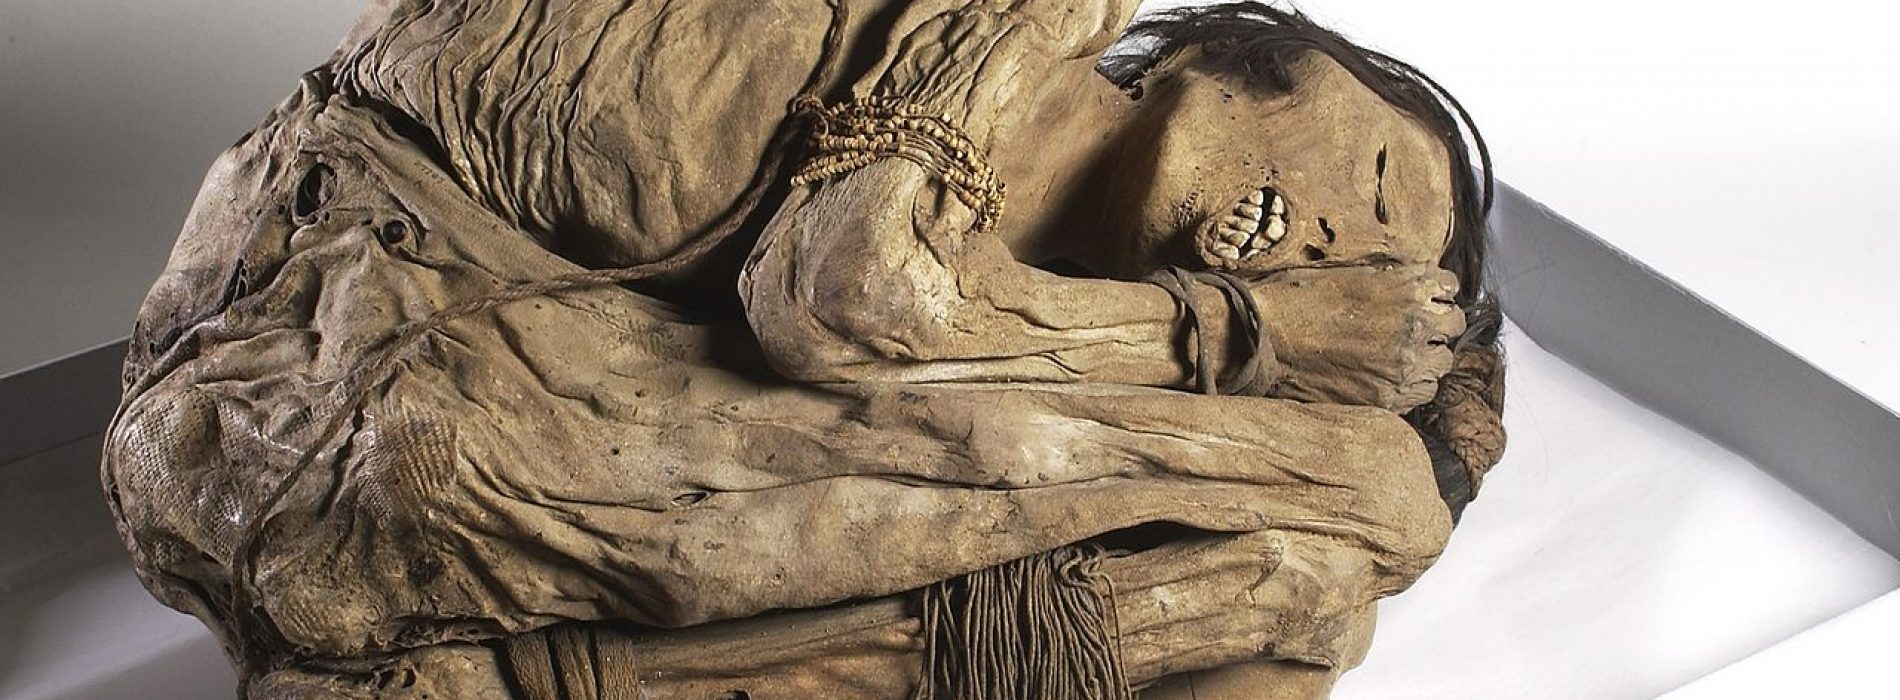 New Study Shows the Ancient Irish Dismembered Their Dead Relatives After Death